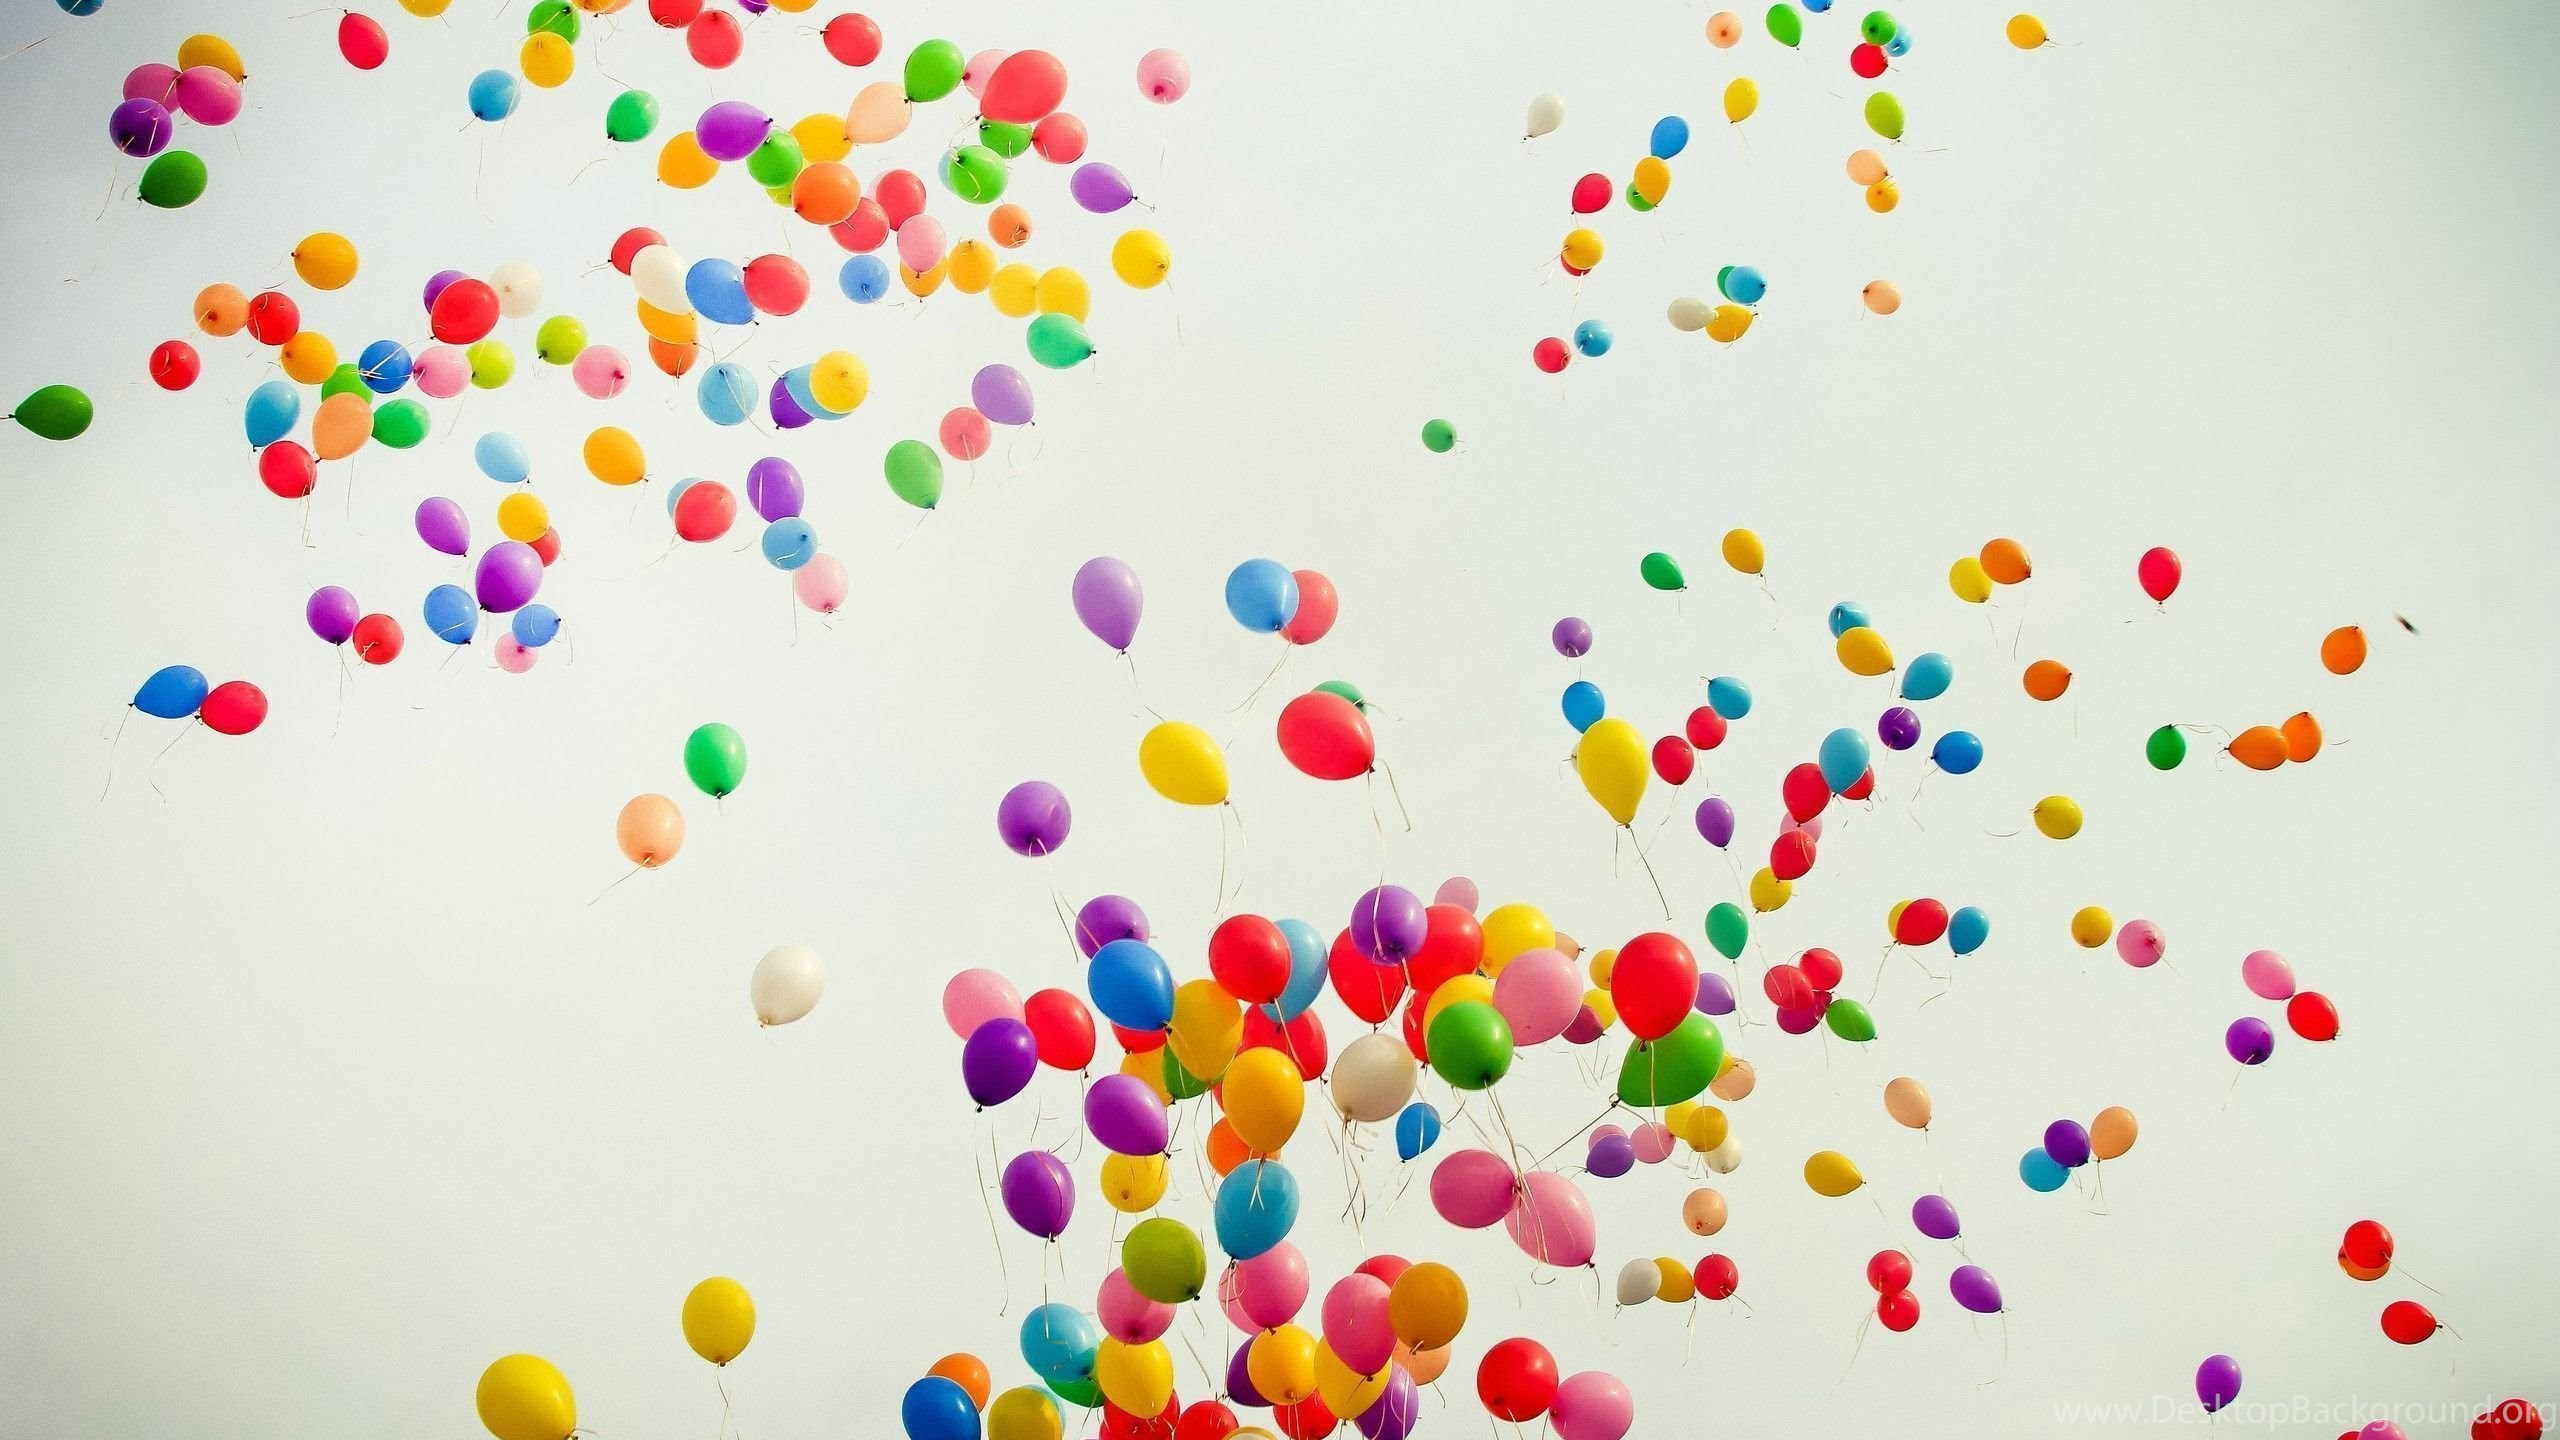 Colorful Shiny Balloons Wallpapers Photography Desktop